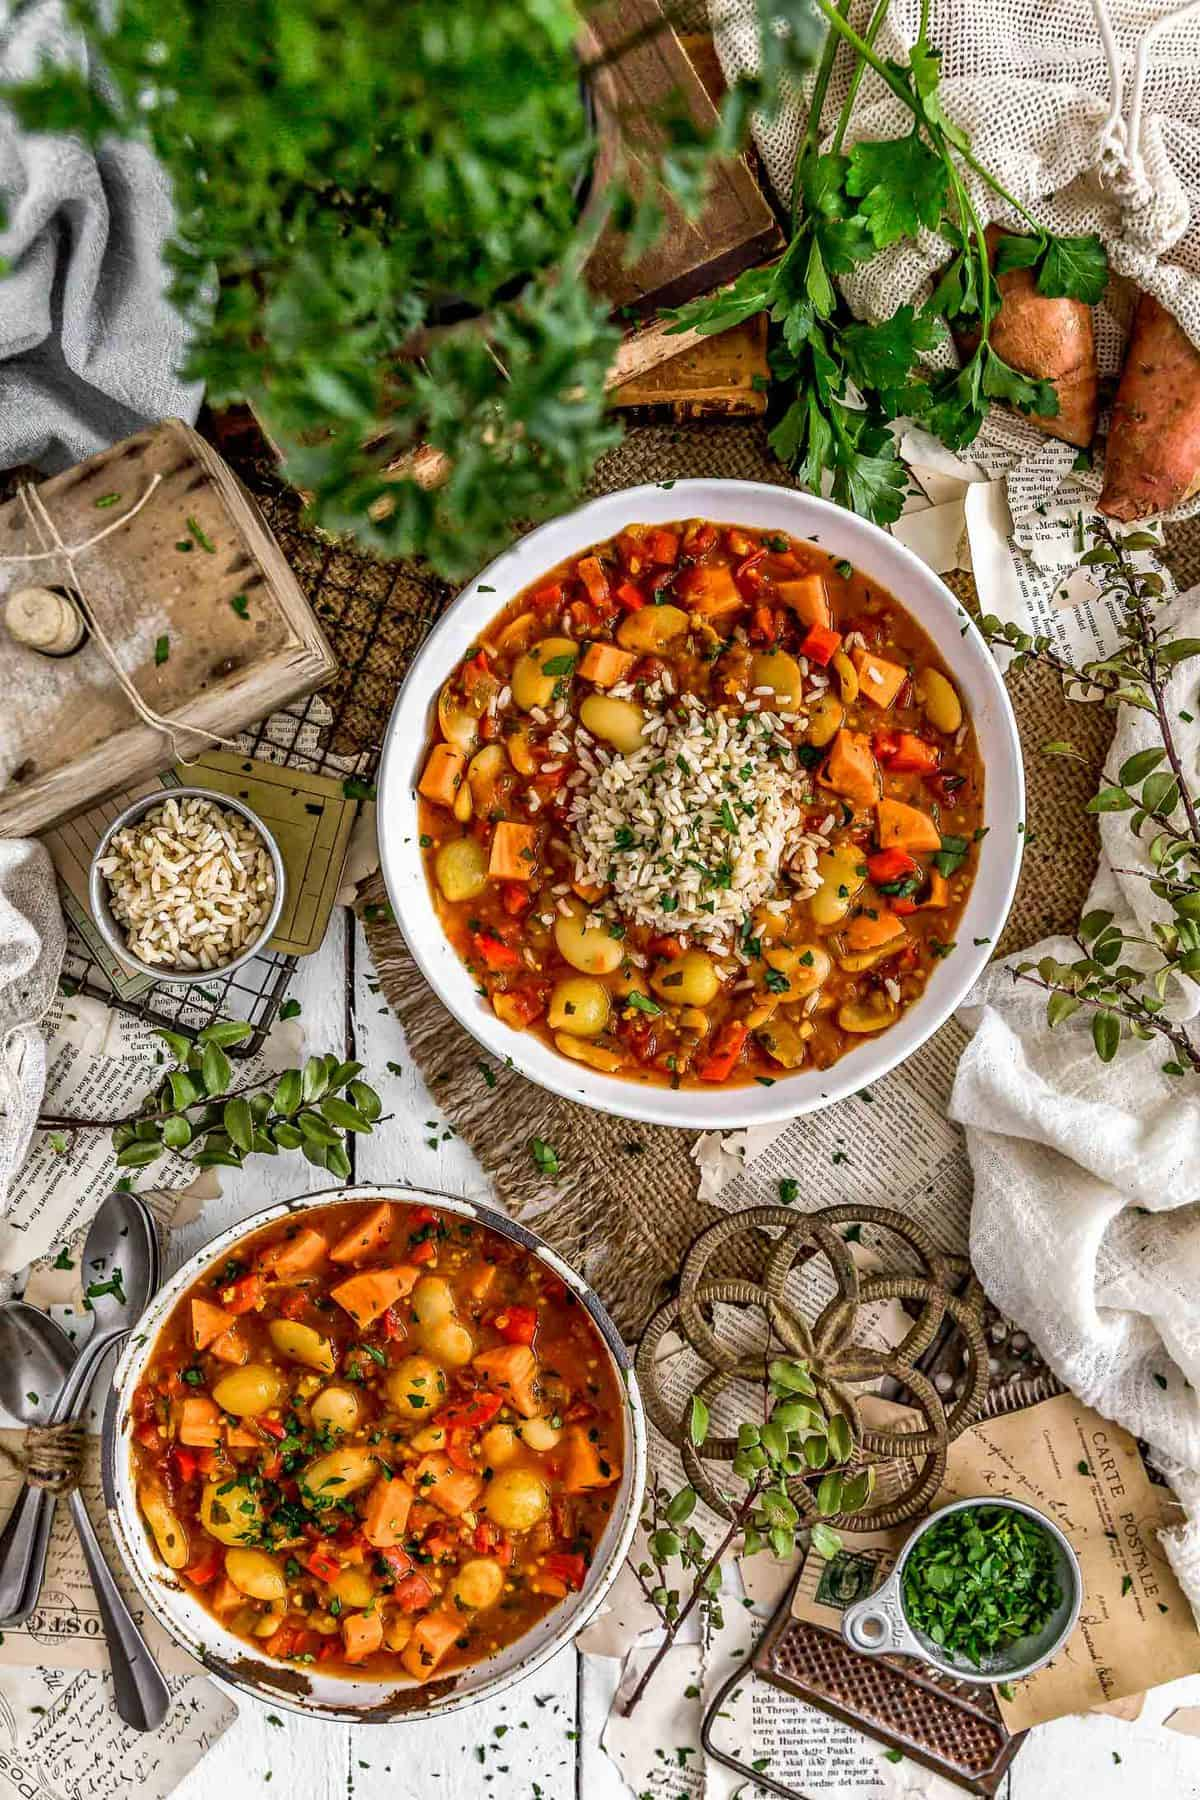 Tablescape of Spanish Butter Bean Sweet Potato Stew